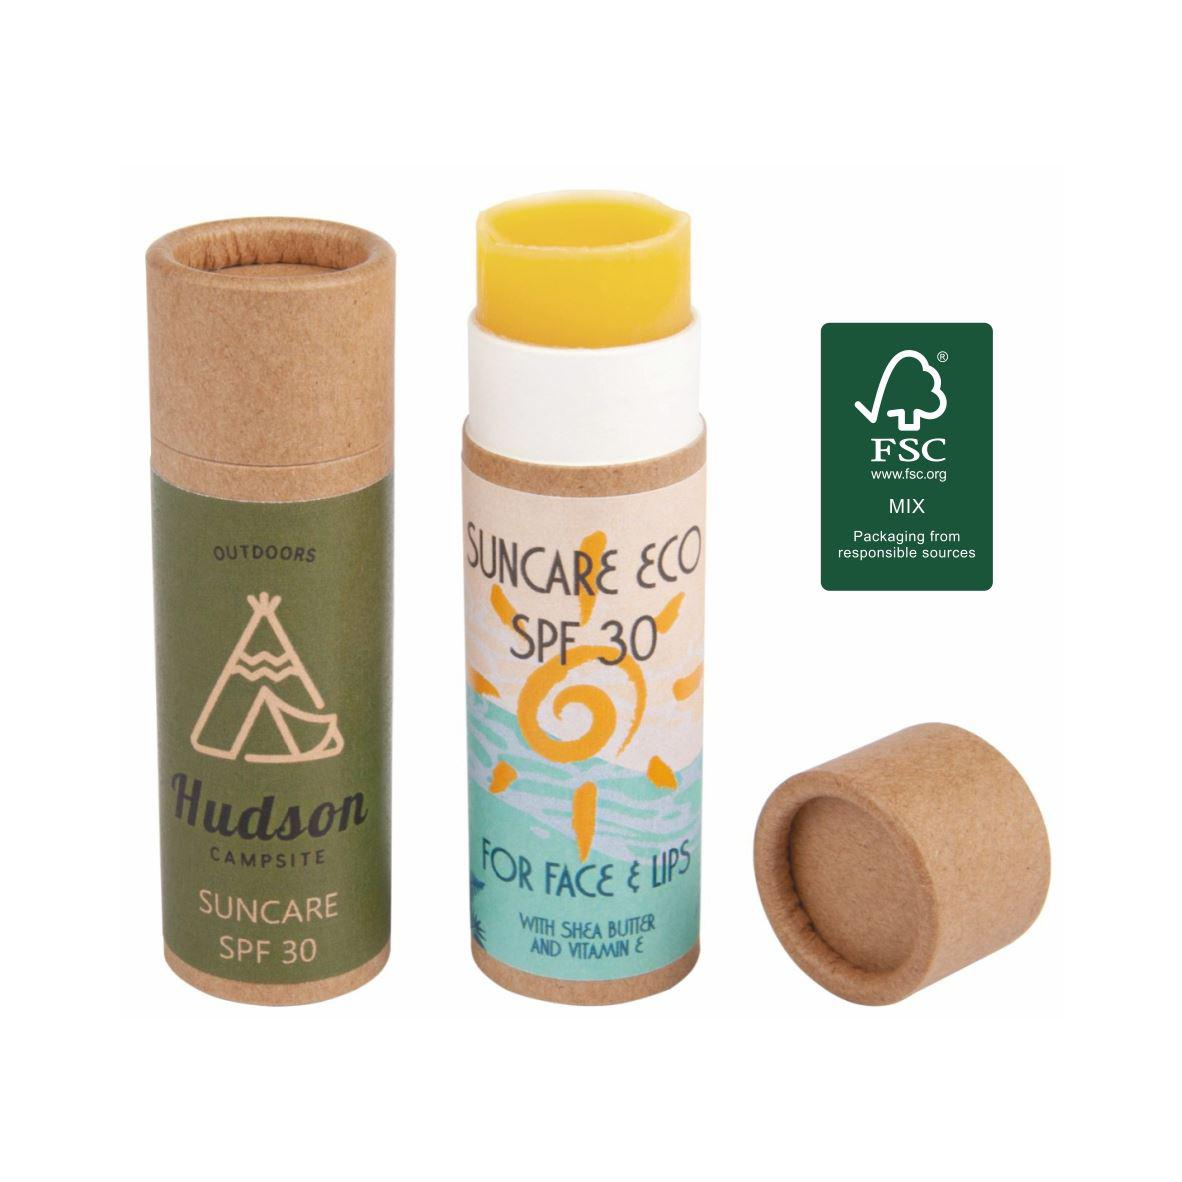 Eco sun care stick in FSC certified push-up container